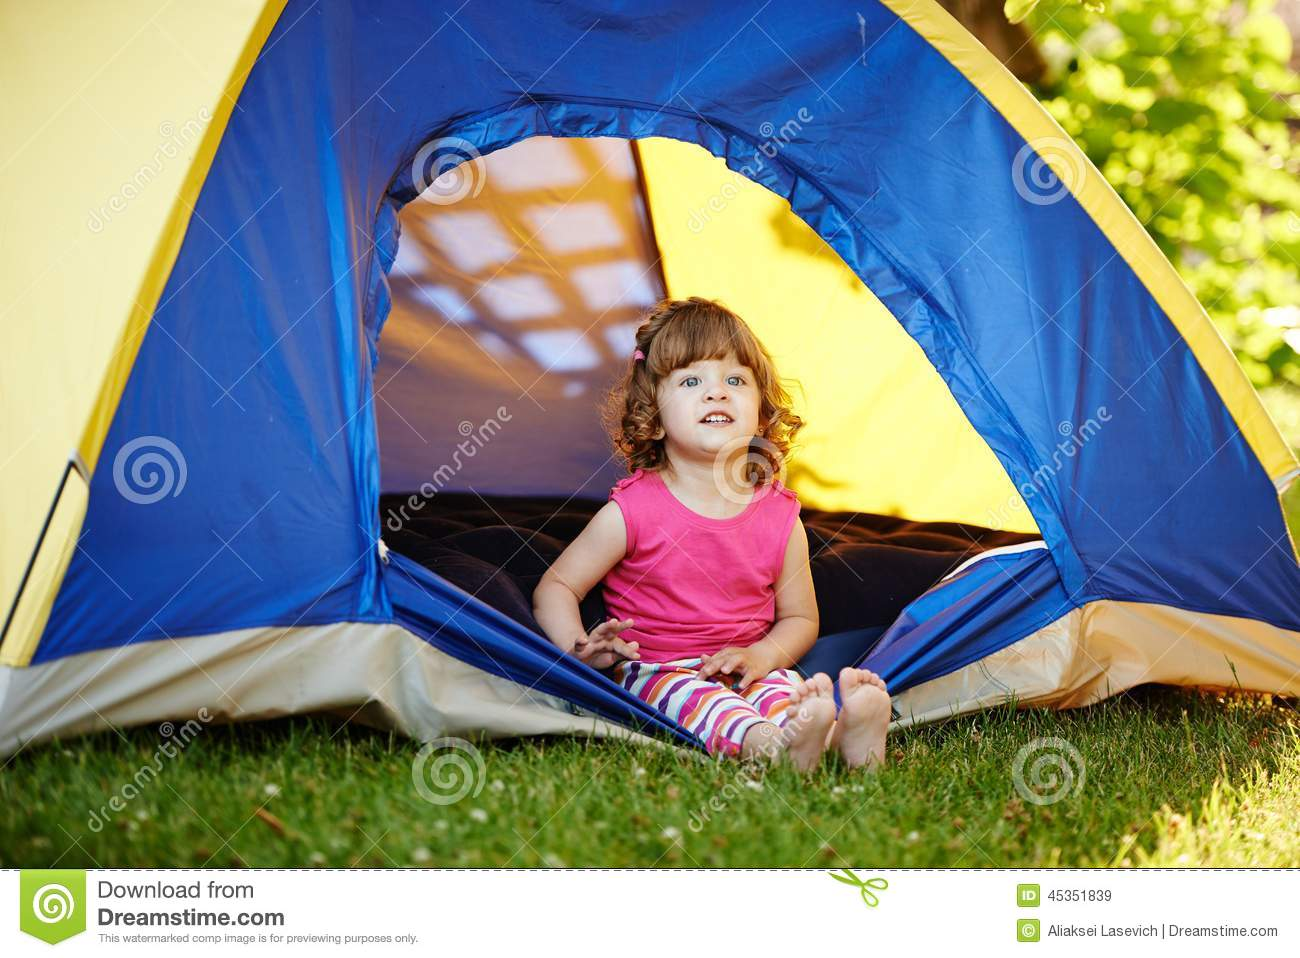 The tent girl